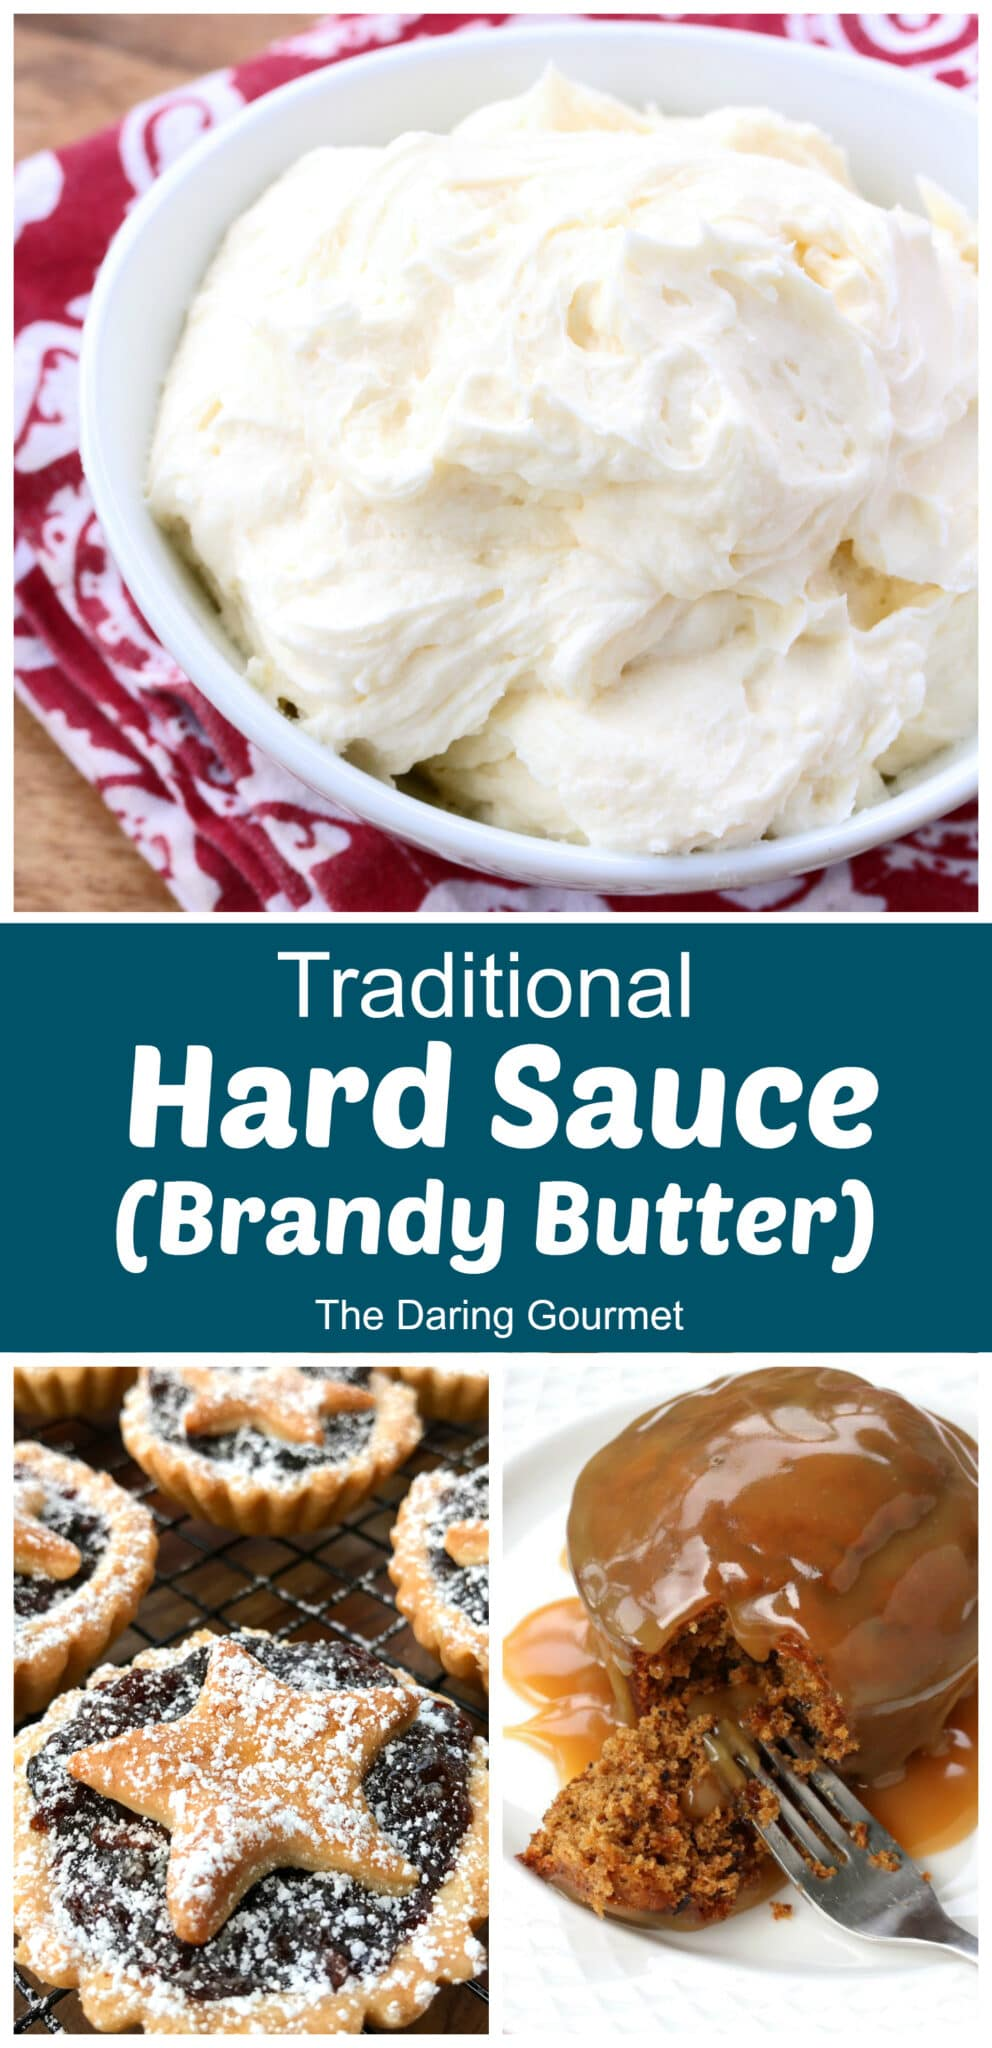 hard sauce recipe brandy butter traditional rum cognac dessert pudding mince pie